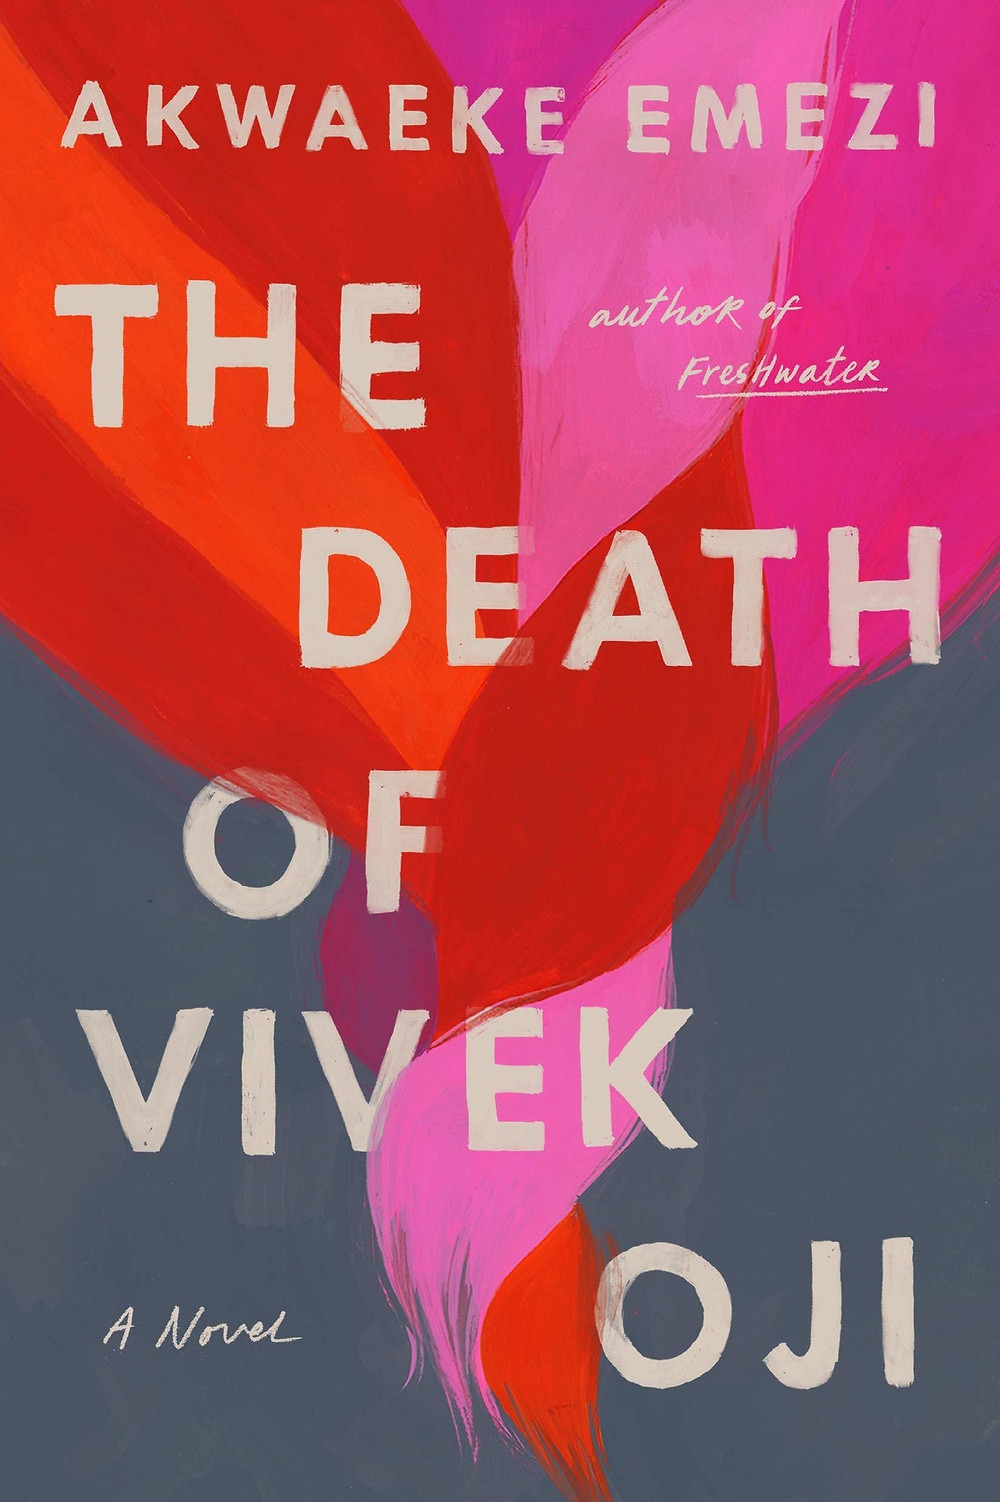 "The Death of Vivek Oji by Akwaeke Emezi (Author) The Book Slut book reviews, thebookslut Friday debrief ""Electrifying."" -- O Magazine   Named one of the year's most anticipated books by The New York Times, Elle, Harper's Bazaar, BuzzFeed, Refinery29, and more What does it mean for a family to lose a child they never really knew? One afternoon, in a town in southeastern Nigeria, a mother opens her front door to discover her son's body, wrapped in colorful fabric, at her feet. What follows is the tumultuous, heart-wrenching story of one family's struggle to understand a child whose spirit is both gentle and mysterious. Raised by a distant father and an understanding but overprotective mother, Vivek suffers disorienting blackouts, moments of disconnection between self and surroundings. As adolescence gives way to adulthood, Vivek finds solace in friendships with the warm, boisterous daughters of the Nigerwives, foreign-born women married to Nigerian men. But Vivek's closest bond is with Osita, the worldly, high-spirited cousin whose teasing confidence masks a guarded private life. As their relationship deepens--and Osita struggles to understand Vivek's escalating crisis--the mystery gives way to a heart-stopping act of violence in a moment of exhilarating freedom. Propulsively readable, teeming with unforgettable characters, The Death of Vivek Oji is a novel of family and friendship that challenges expectations--a dramatic story of loss and transcendence that will move every reader. Product Details Price $27.00  $24.84 Publisher Riverhead Books Publish Date August 04, 2020 Pages 256 Dimensions 5.7 X 0.9 X 8.5 inches 